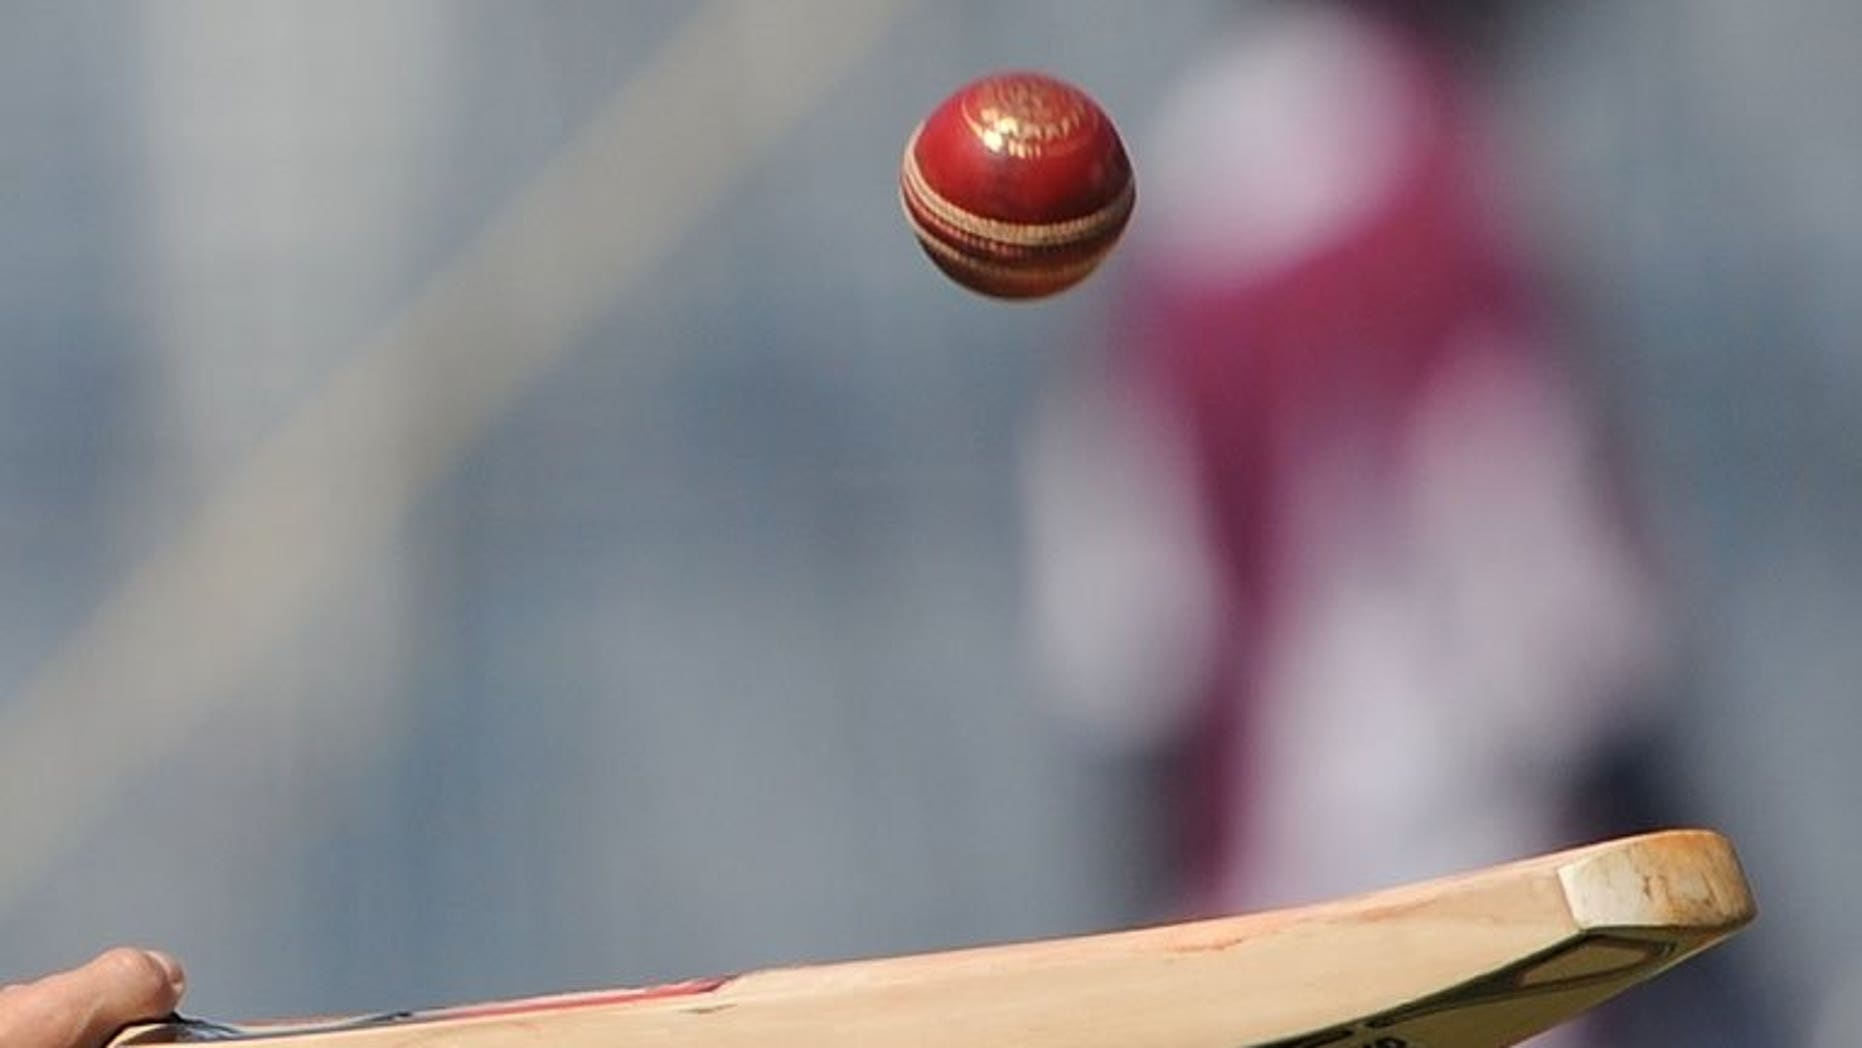 A cricketer tosses a ball with a bat in Mumbai on November 21, 2011. Sri Lanka cricket bosses banned two umpires named by an Indian television programme last year that claimed they were willing to make favourable decisions during matches for cash.